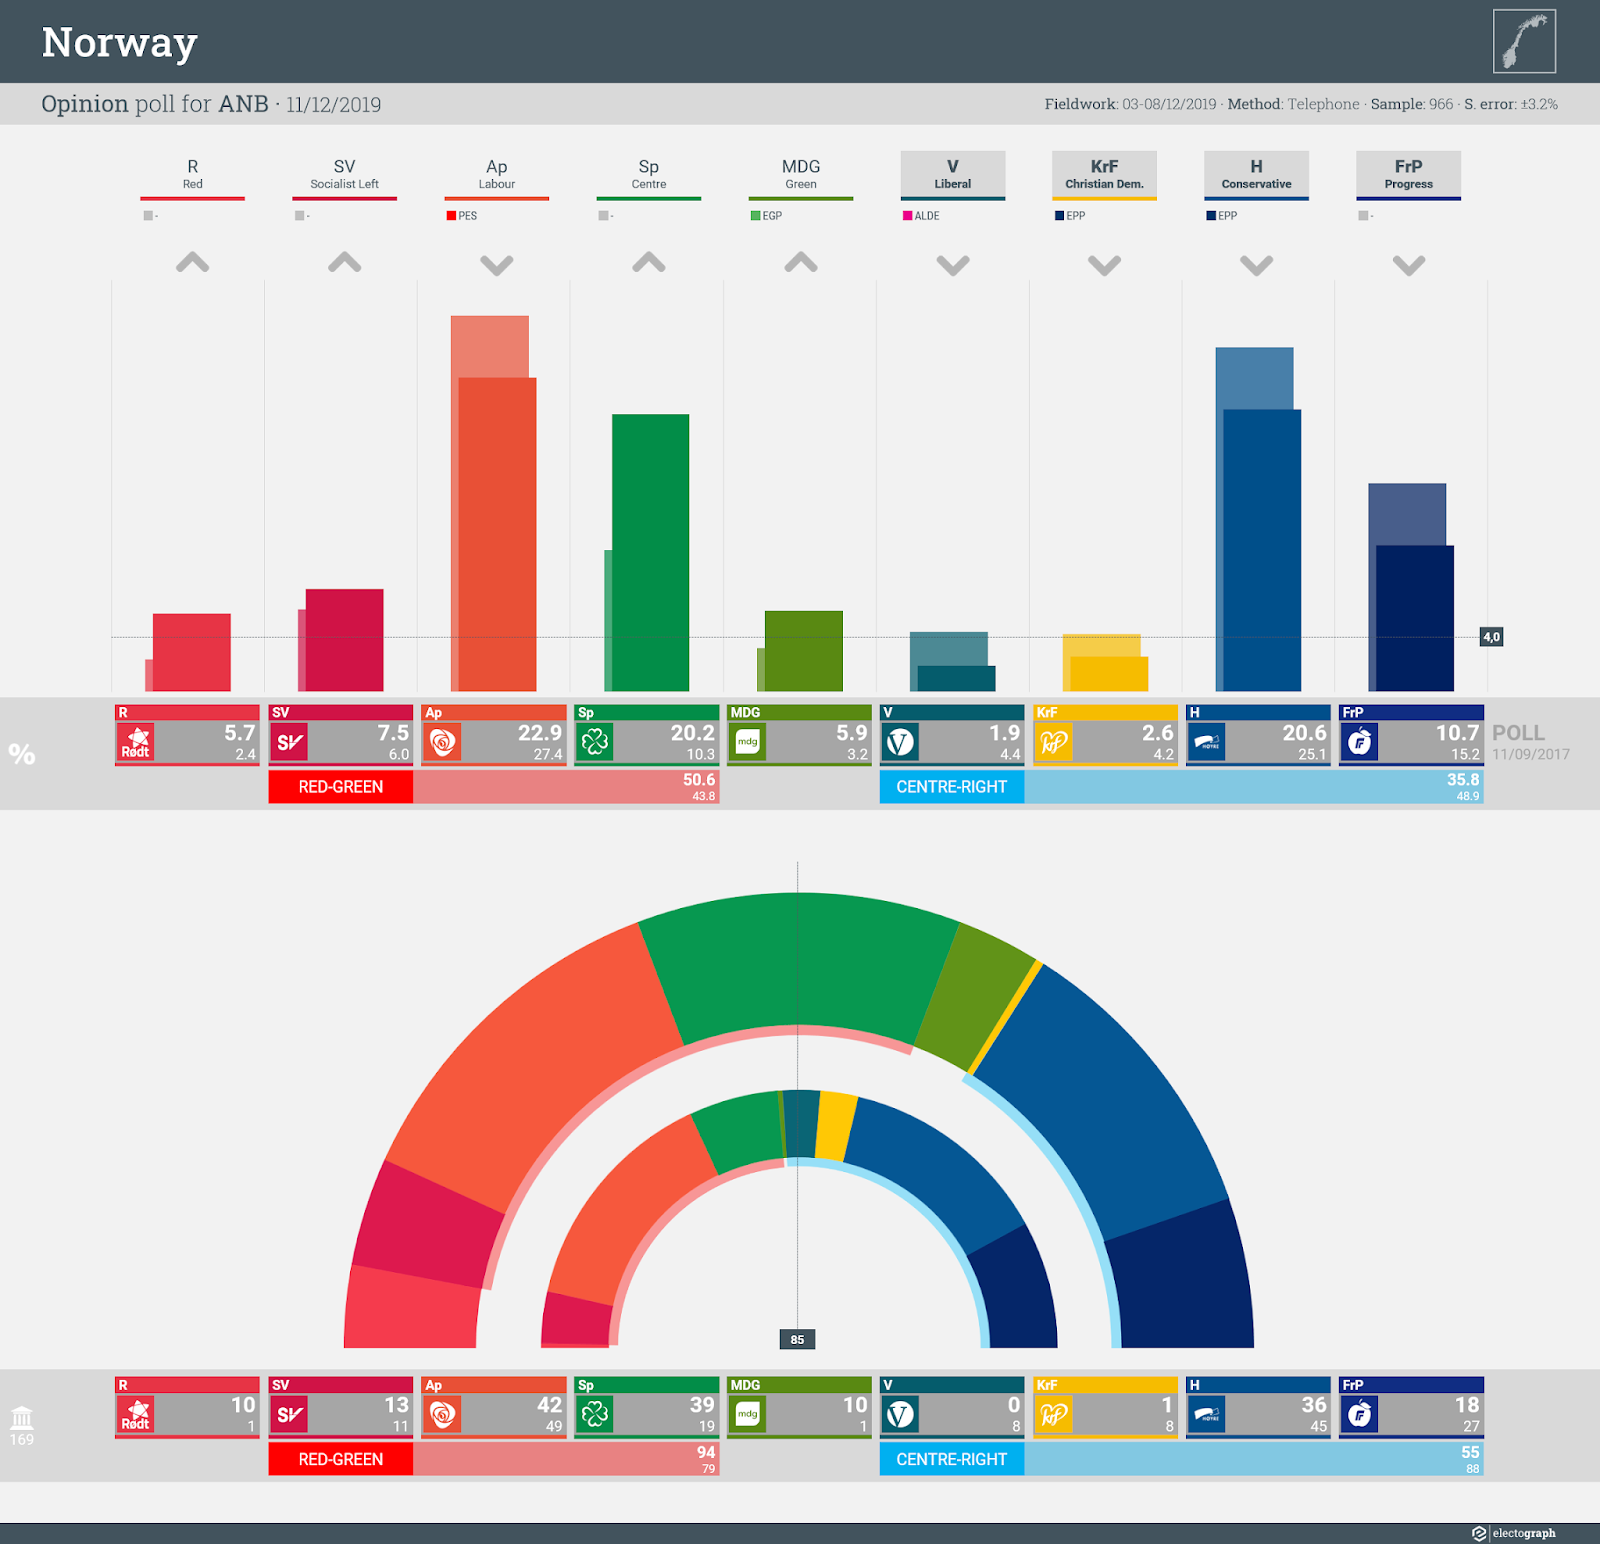 NORWAY: Opinion poll chart for ANB, 11 December 2019